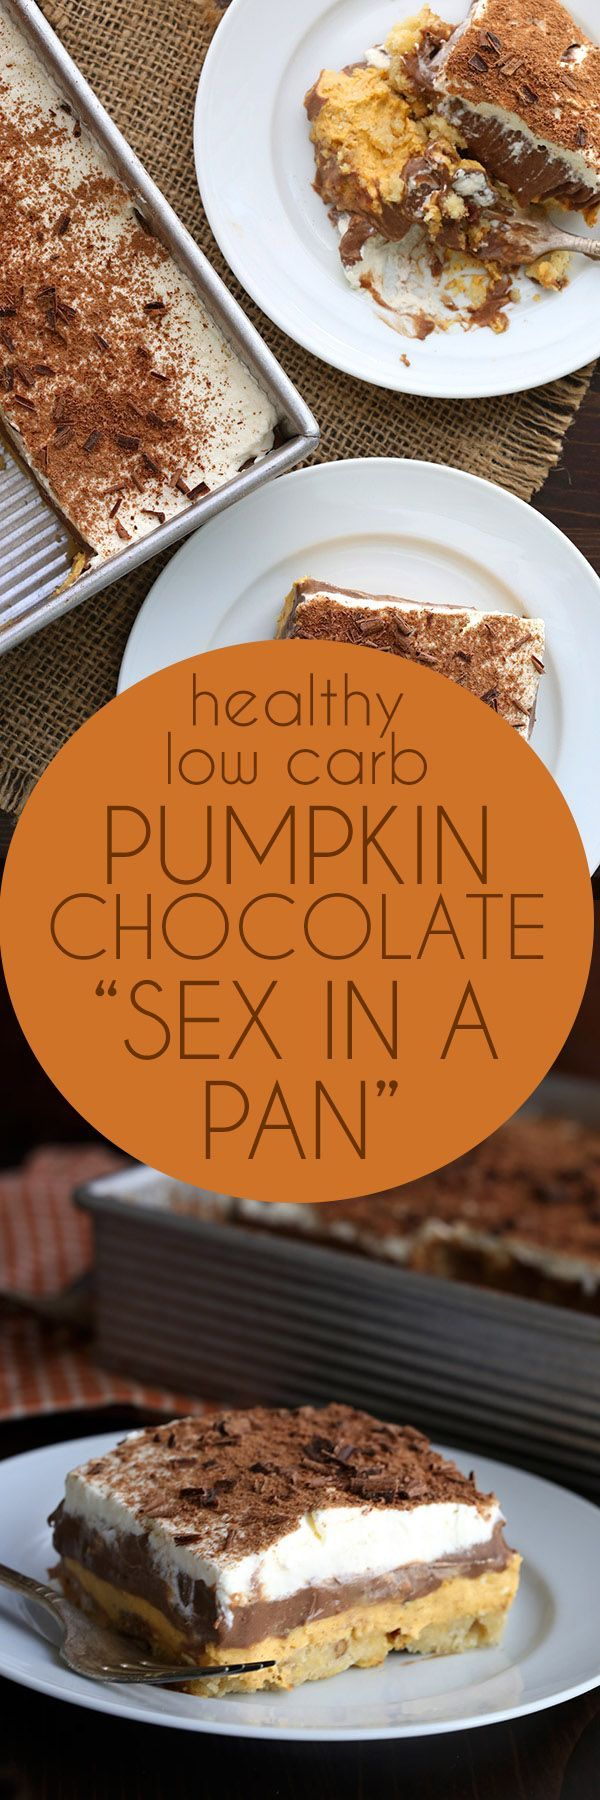 "Rock your world with this low carb ""sex in a pan"". This keto layered pumpkin chocolate dessert is absolutely divine!  via @dreamaboutfood"